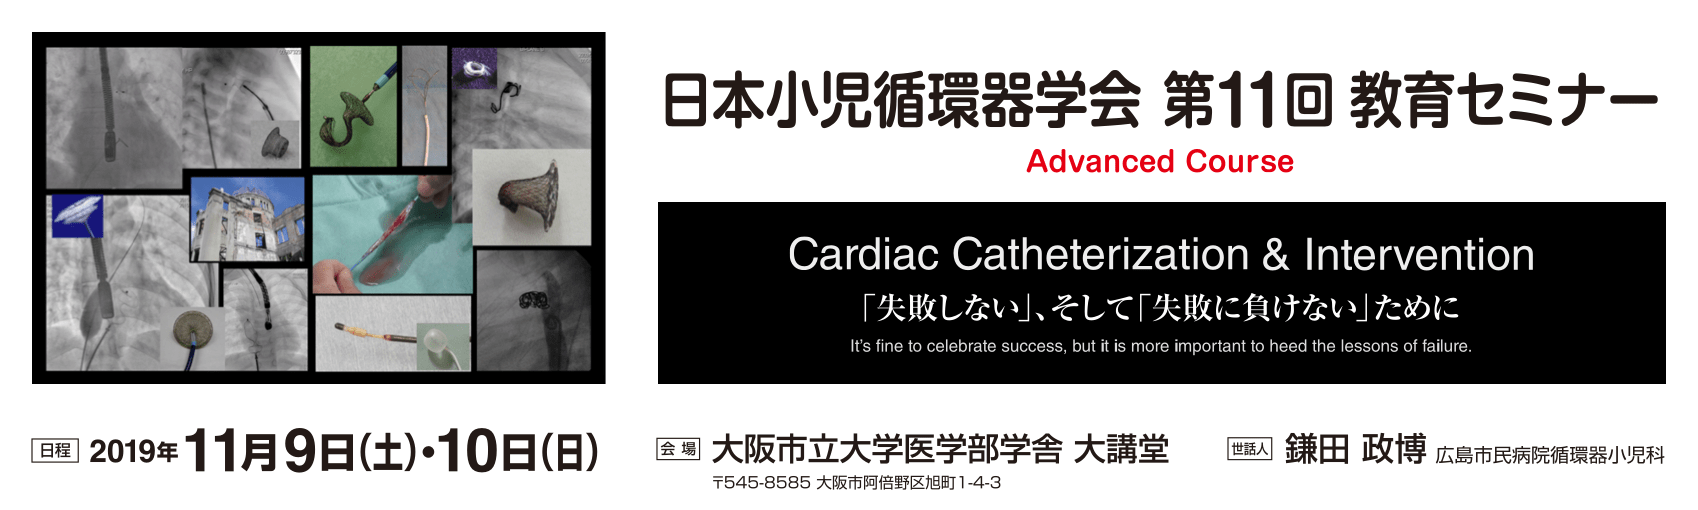 Japanese Society of Pediatric Cardiology and Cardiac Surgery The 11th Education Seminar Advanced Course